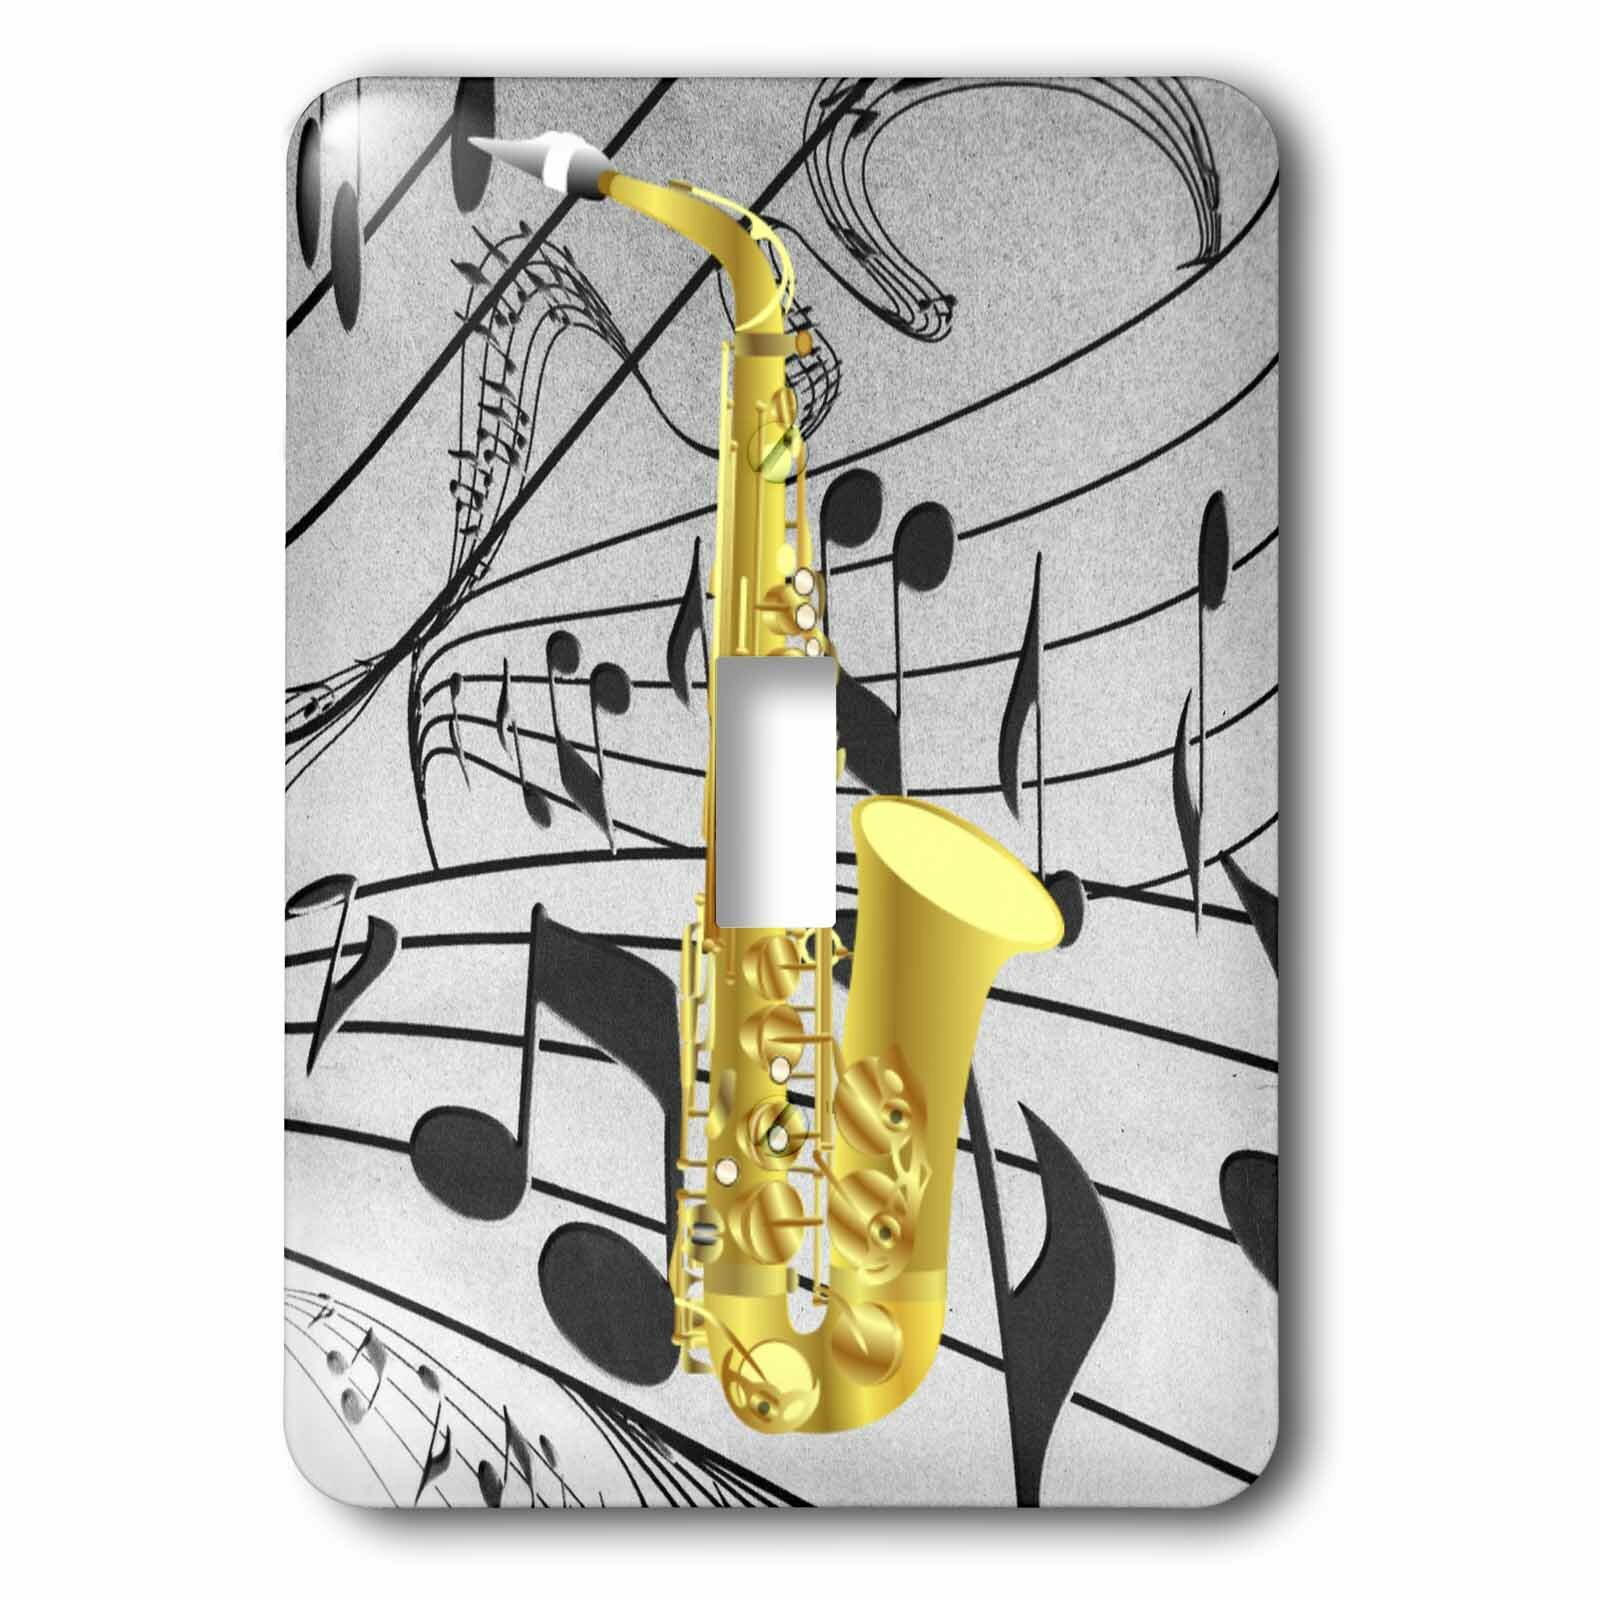 3drose Music Notes 1 Gang Toggle Light Switch Wall Plate Wayfair